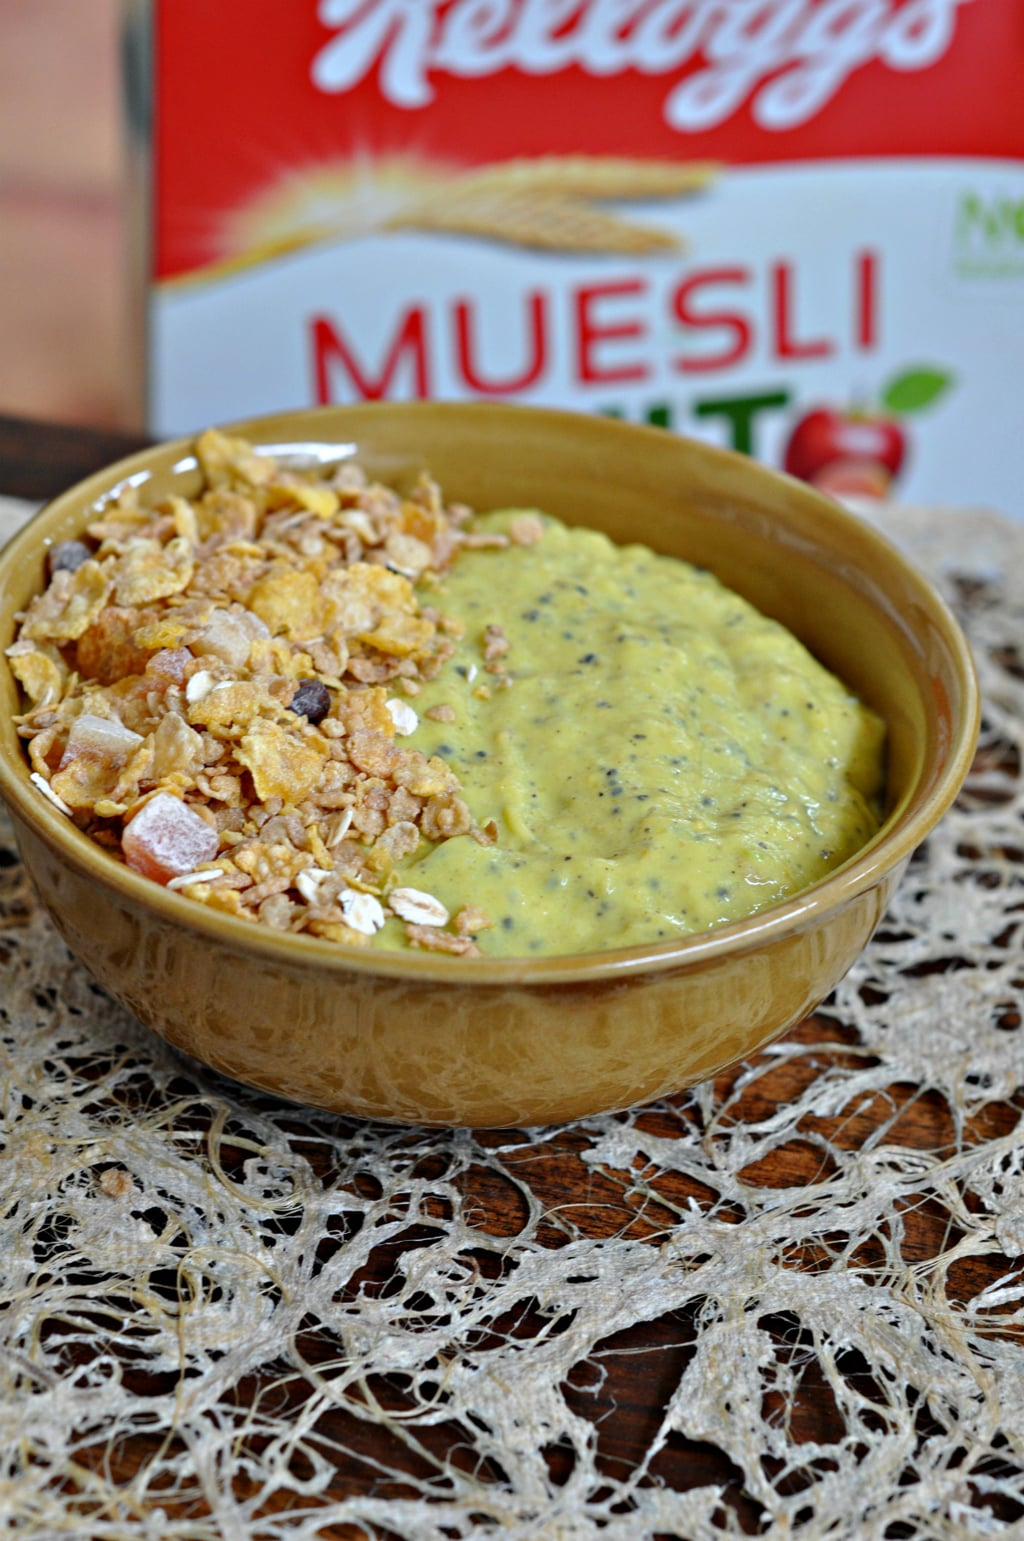 Muesli Avocado & Mango Smoothie Bowl